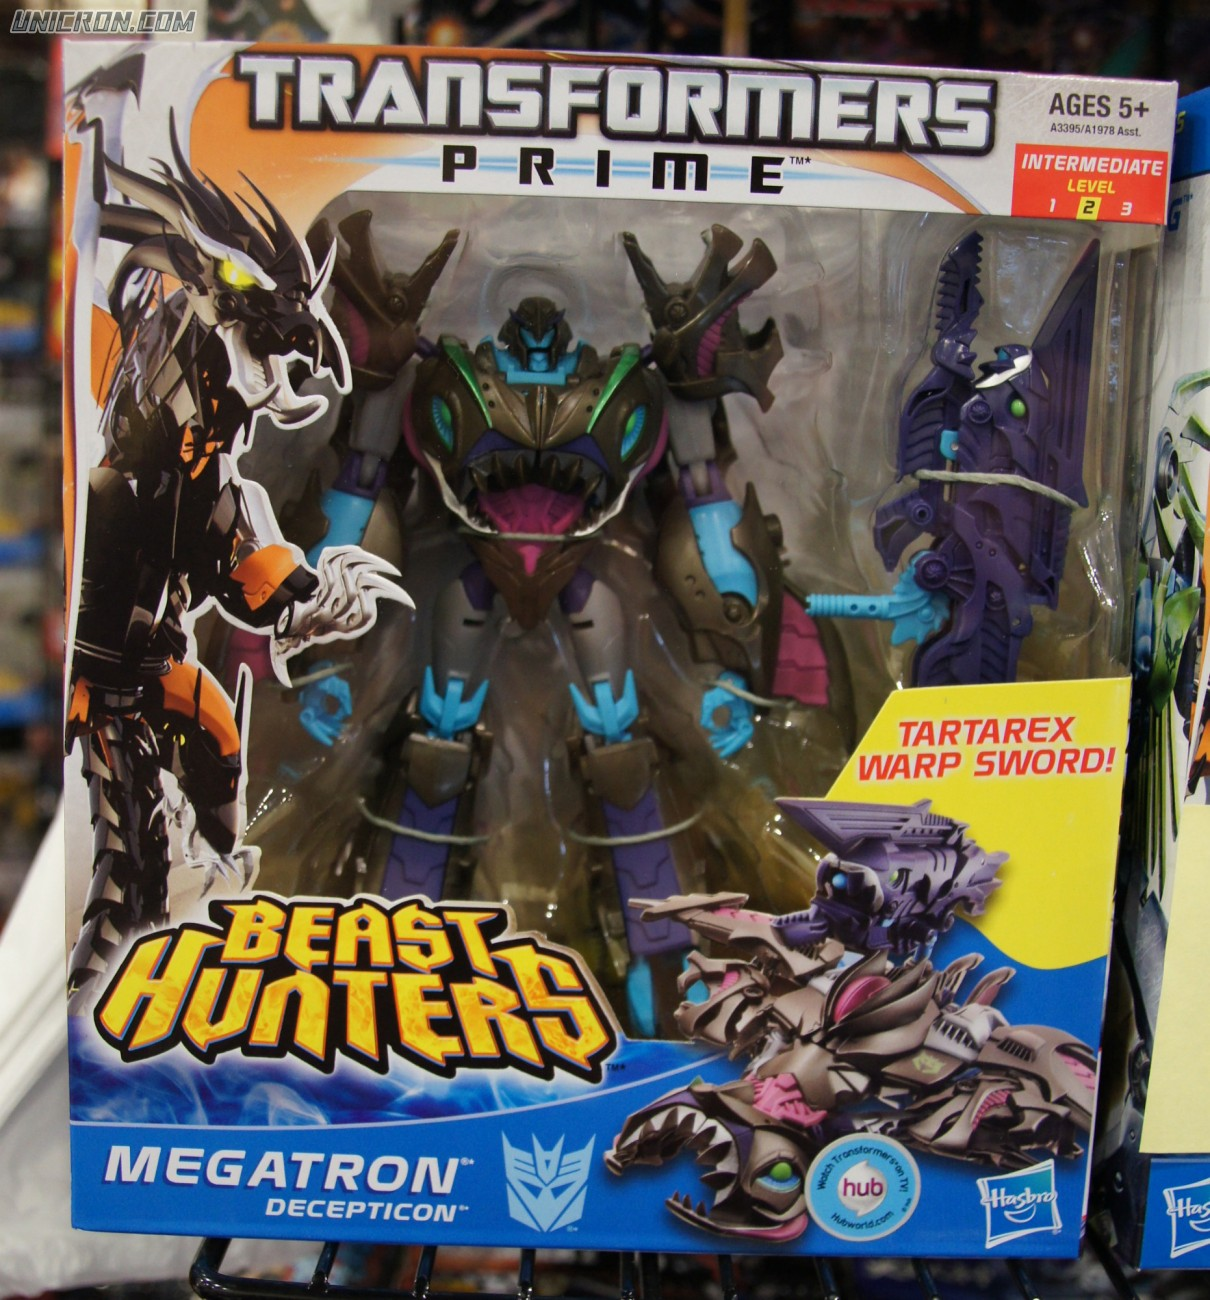 Transformers Prime Megatron (Beast Hunters) toy